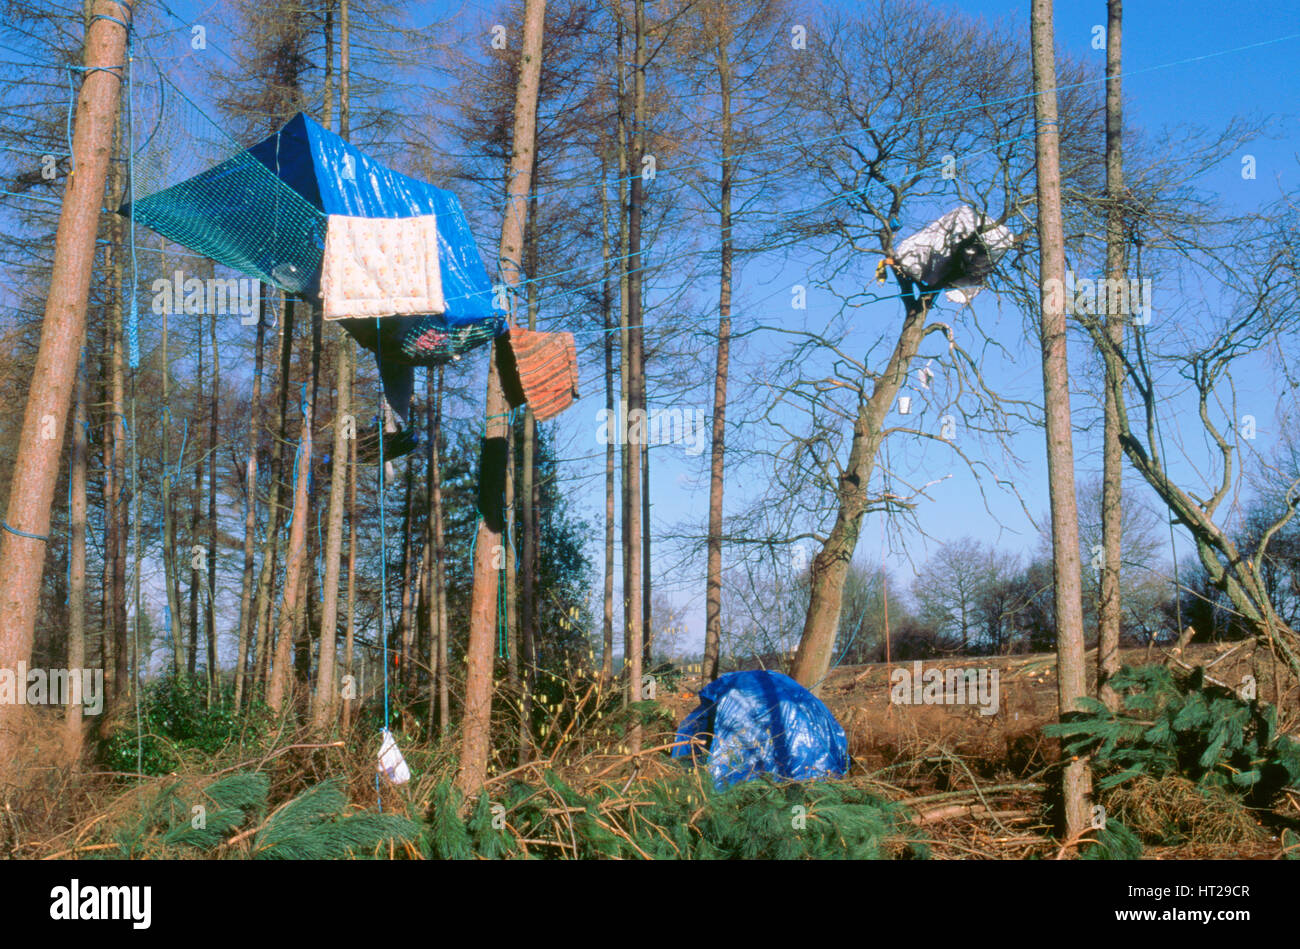 Newbury ByPass constuction protestors. Artist: Unknown. - Stock Image